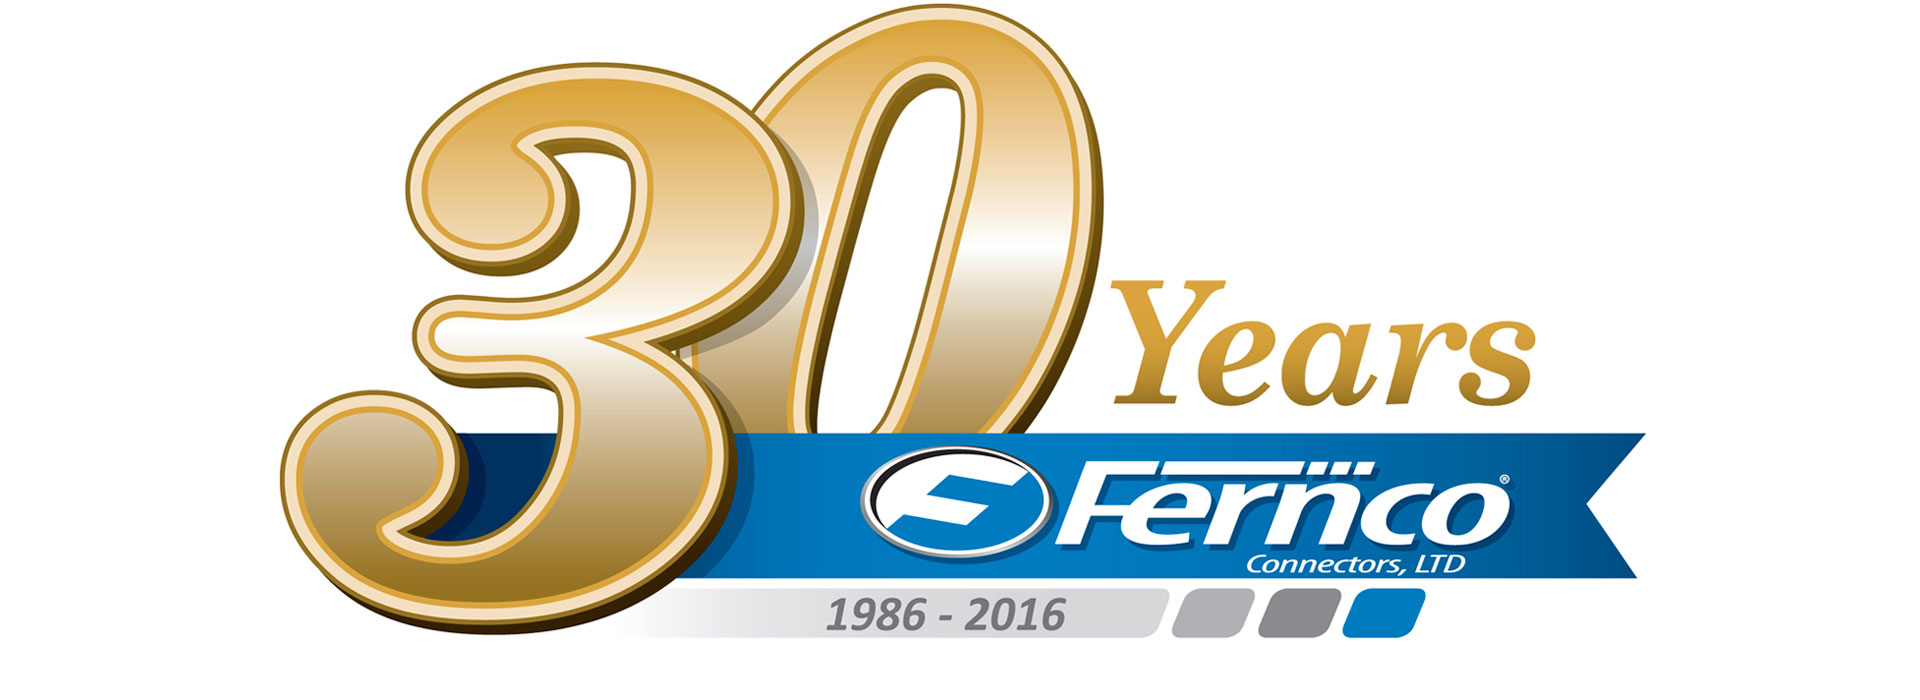 Fernco Connectors, LTD - 30 Year Anniversary - 1986-2016